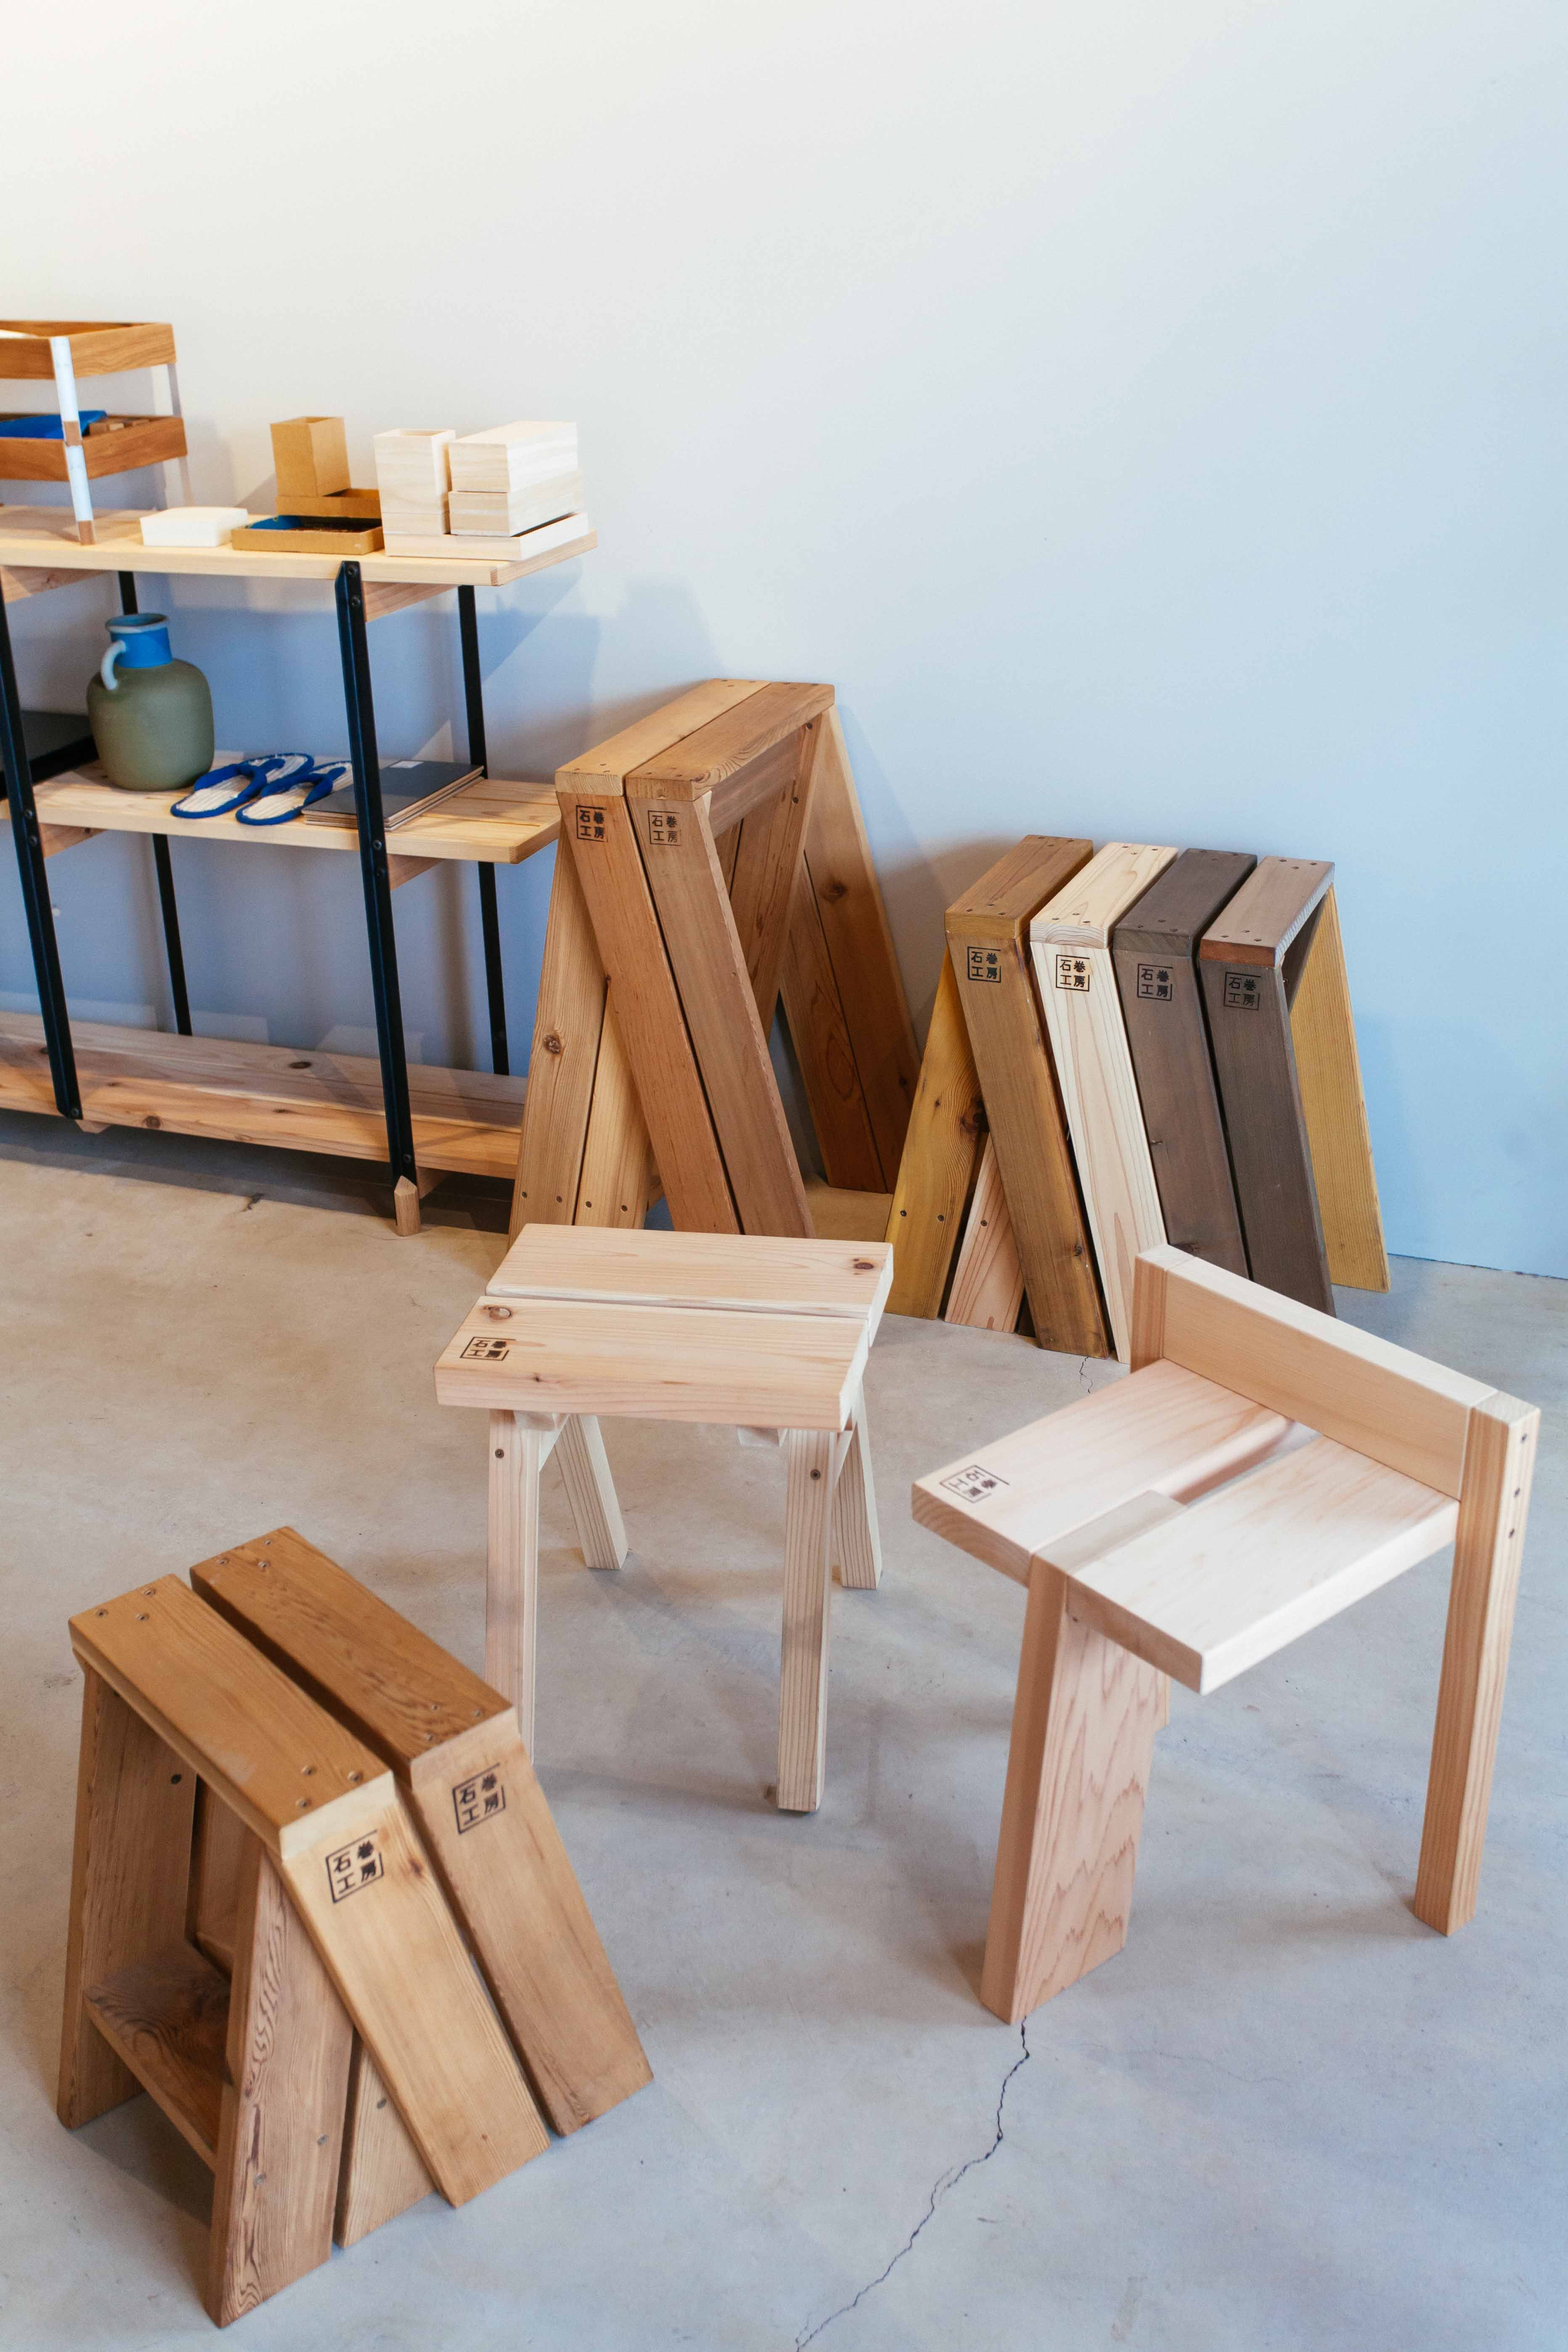 Capable Small Stool Home Simple Modern Solid Wood Stool Sofa Stool Fashion Creative Bench Makeup Stool Living Room Shoe Bench Terrific Value Children Chairs